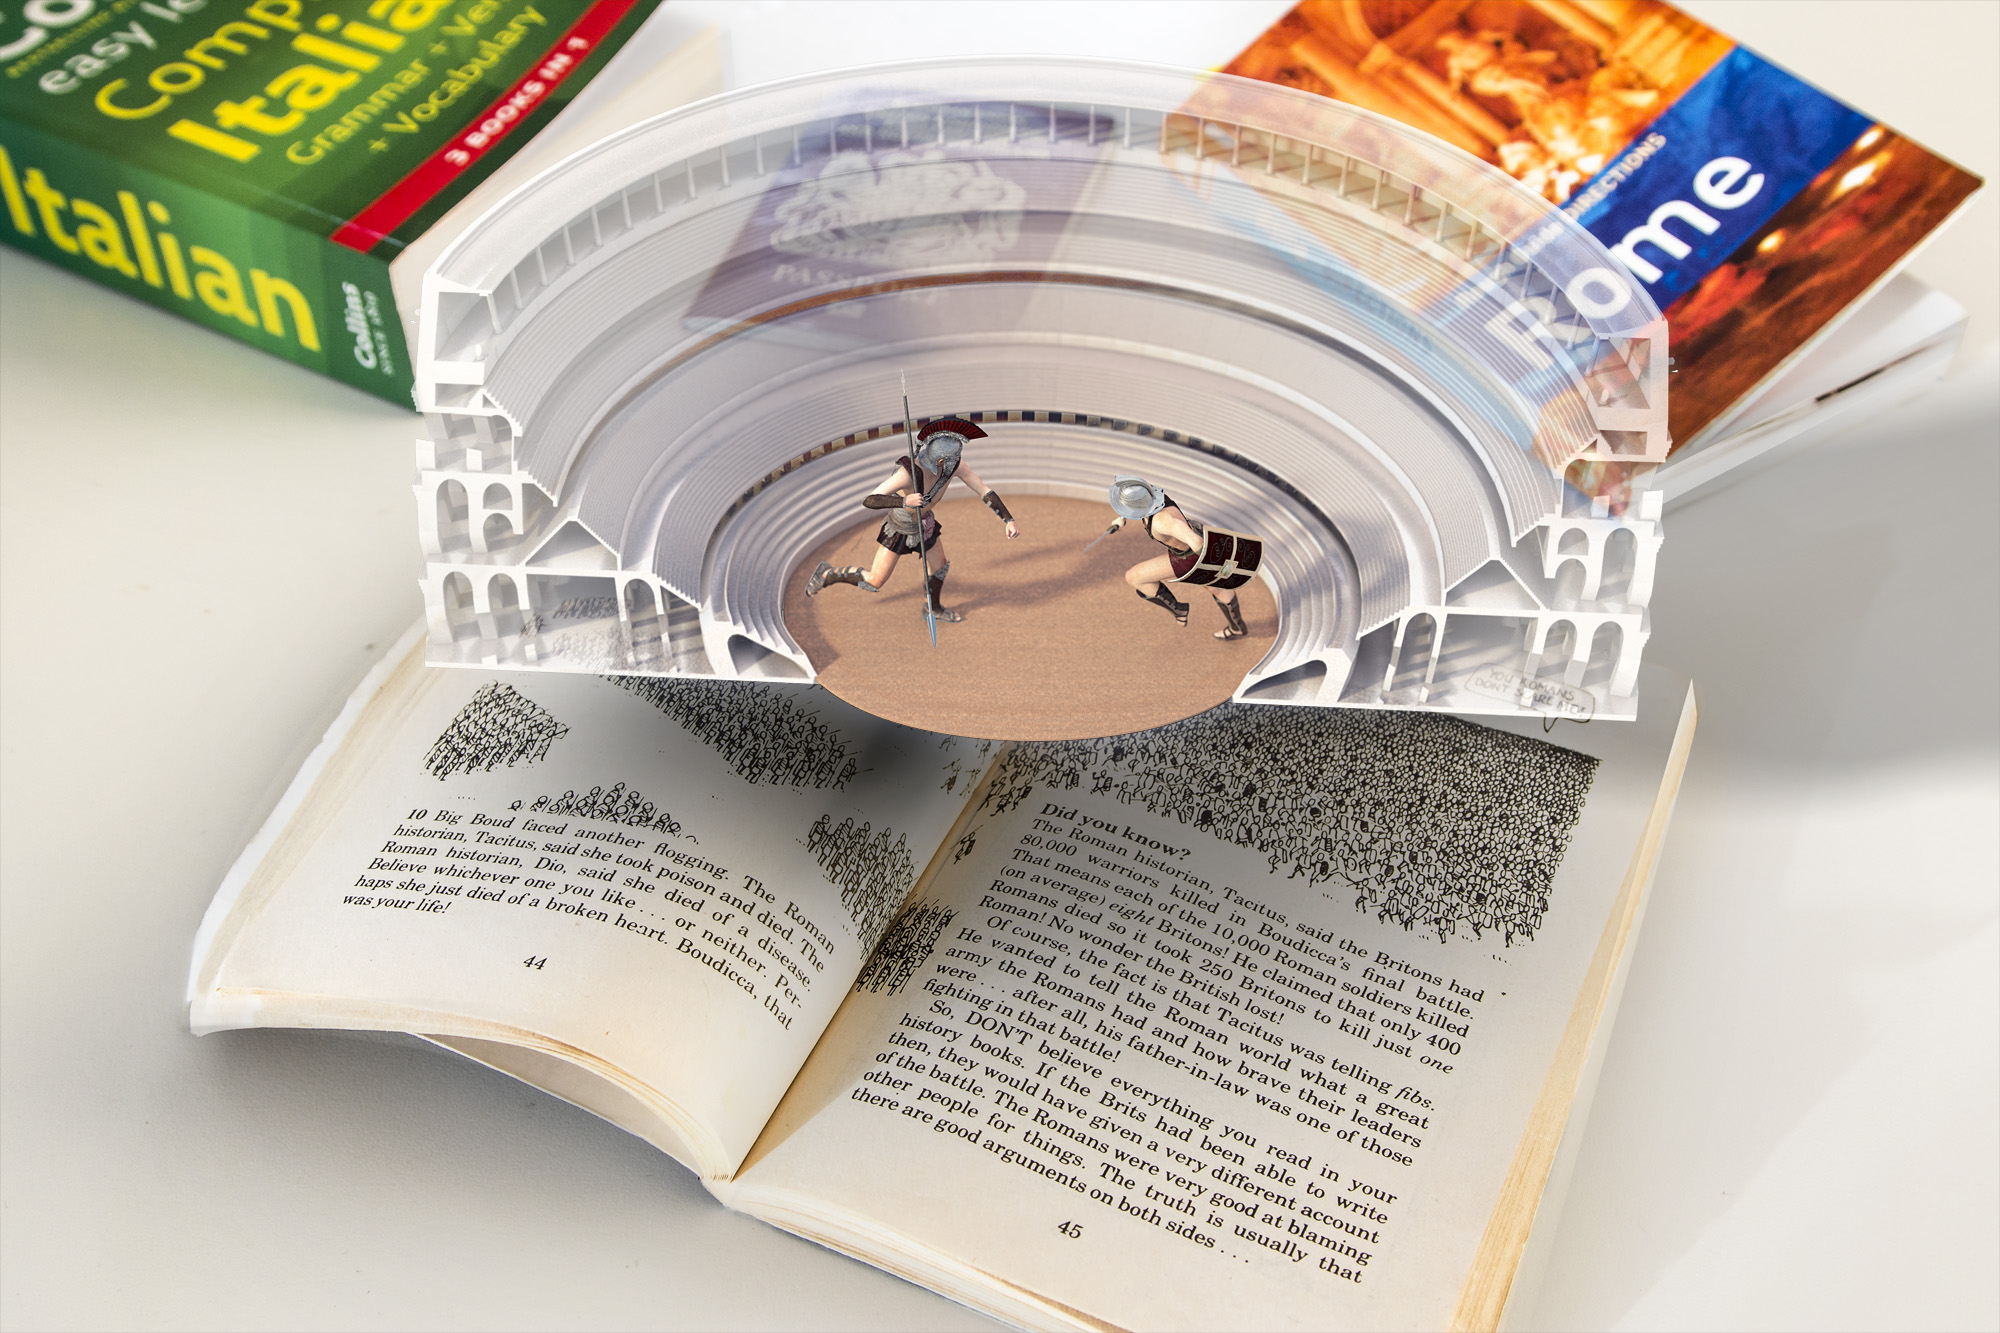 Two gladiators virtually fight in a miniature colosseum hovering over a book about Roman history